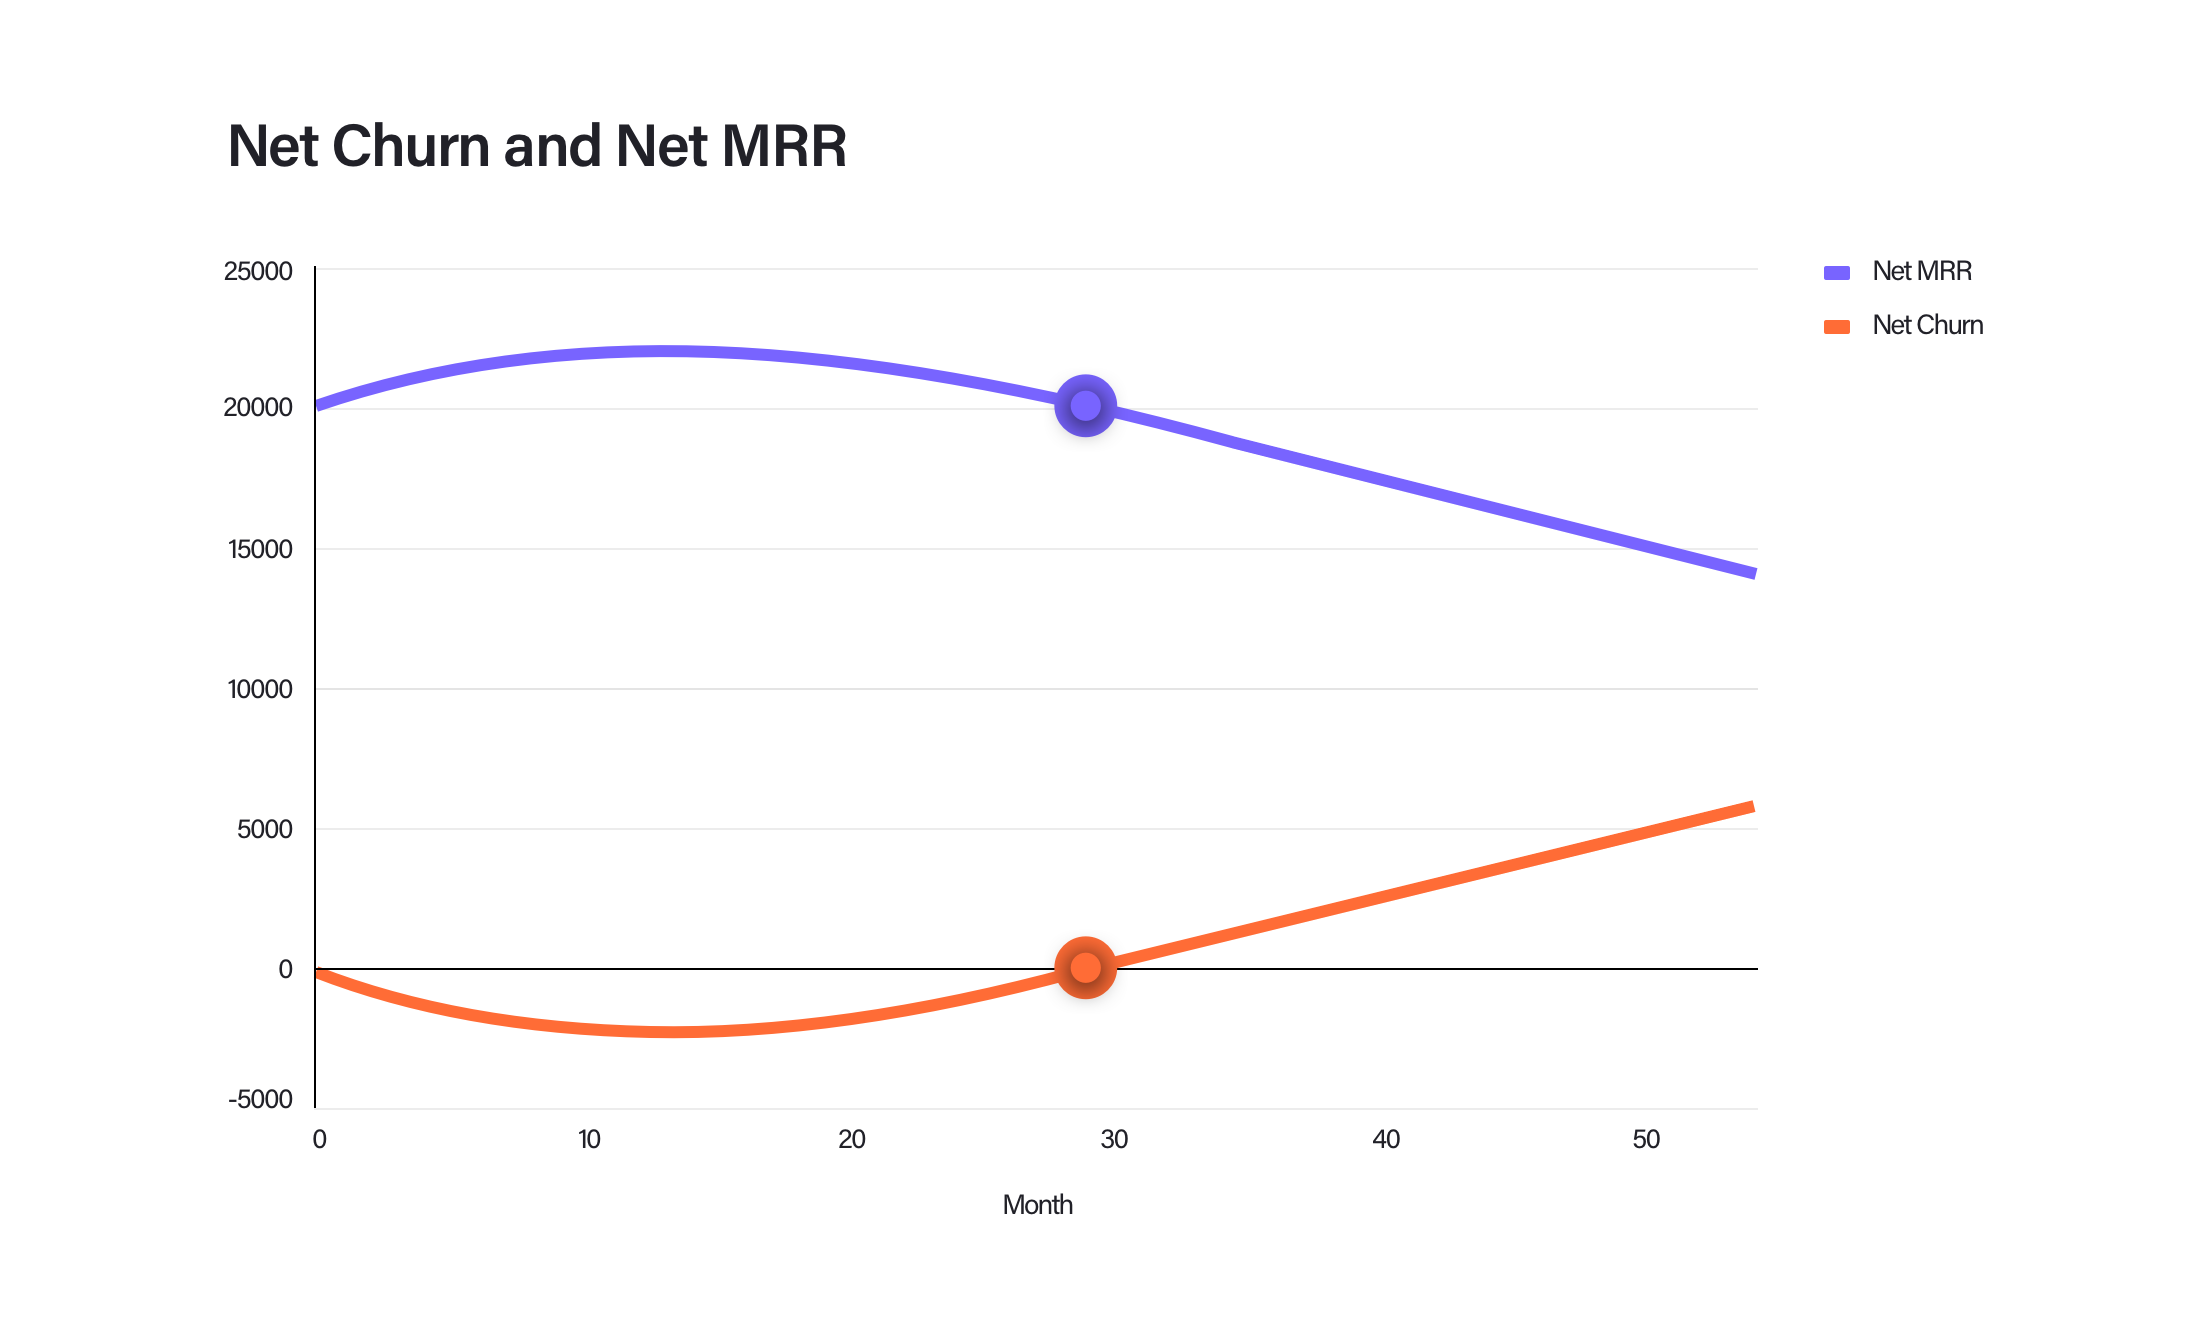 Graph showing how net MRR and net churn changes over time